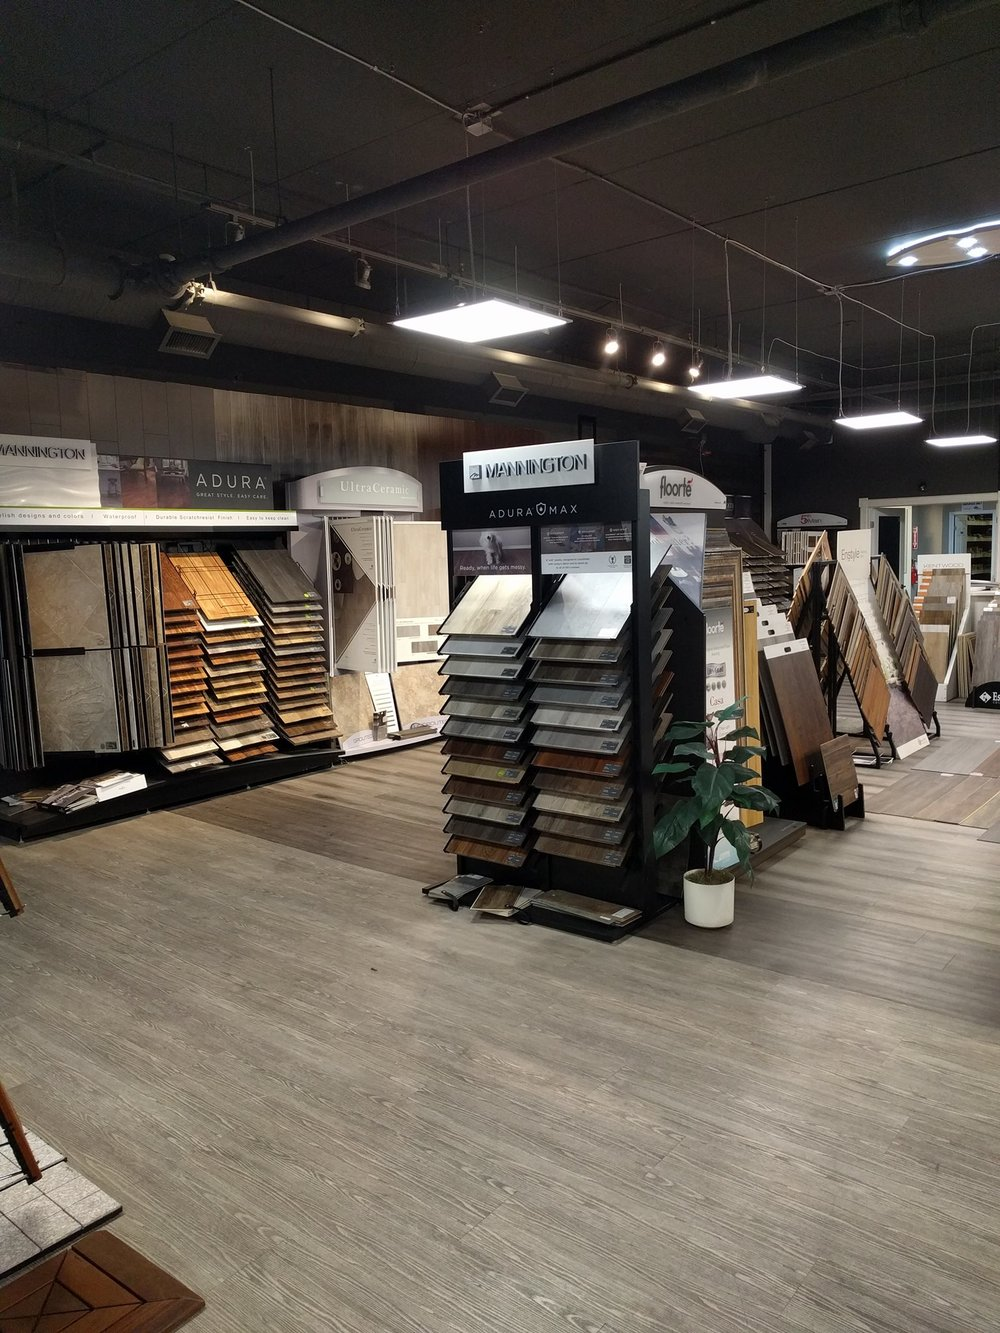 HARDWOOD & ENGINEERED WOOD     Touchtone Canada  offers many major brands of both Hardwood and Engineered Wood in all colors and sizes. We are able to assess which wood will be best for your needs based on your criteria.